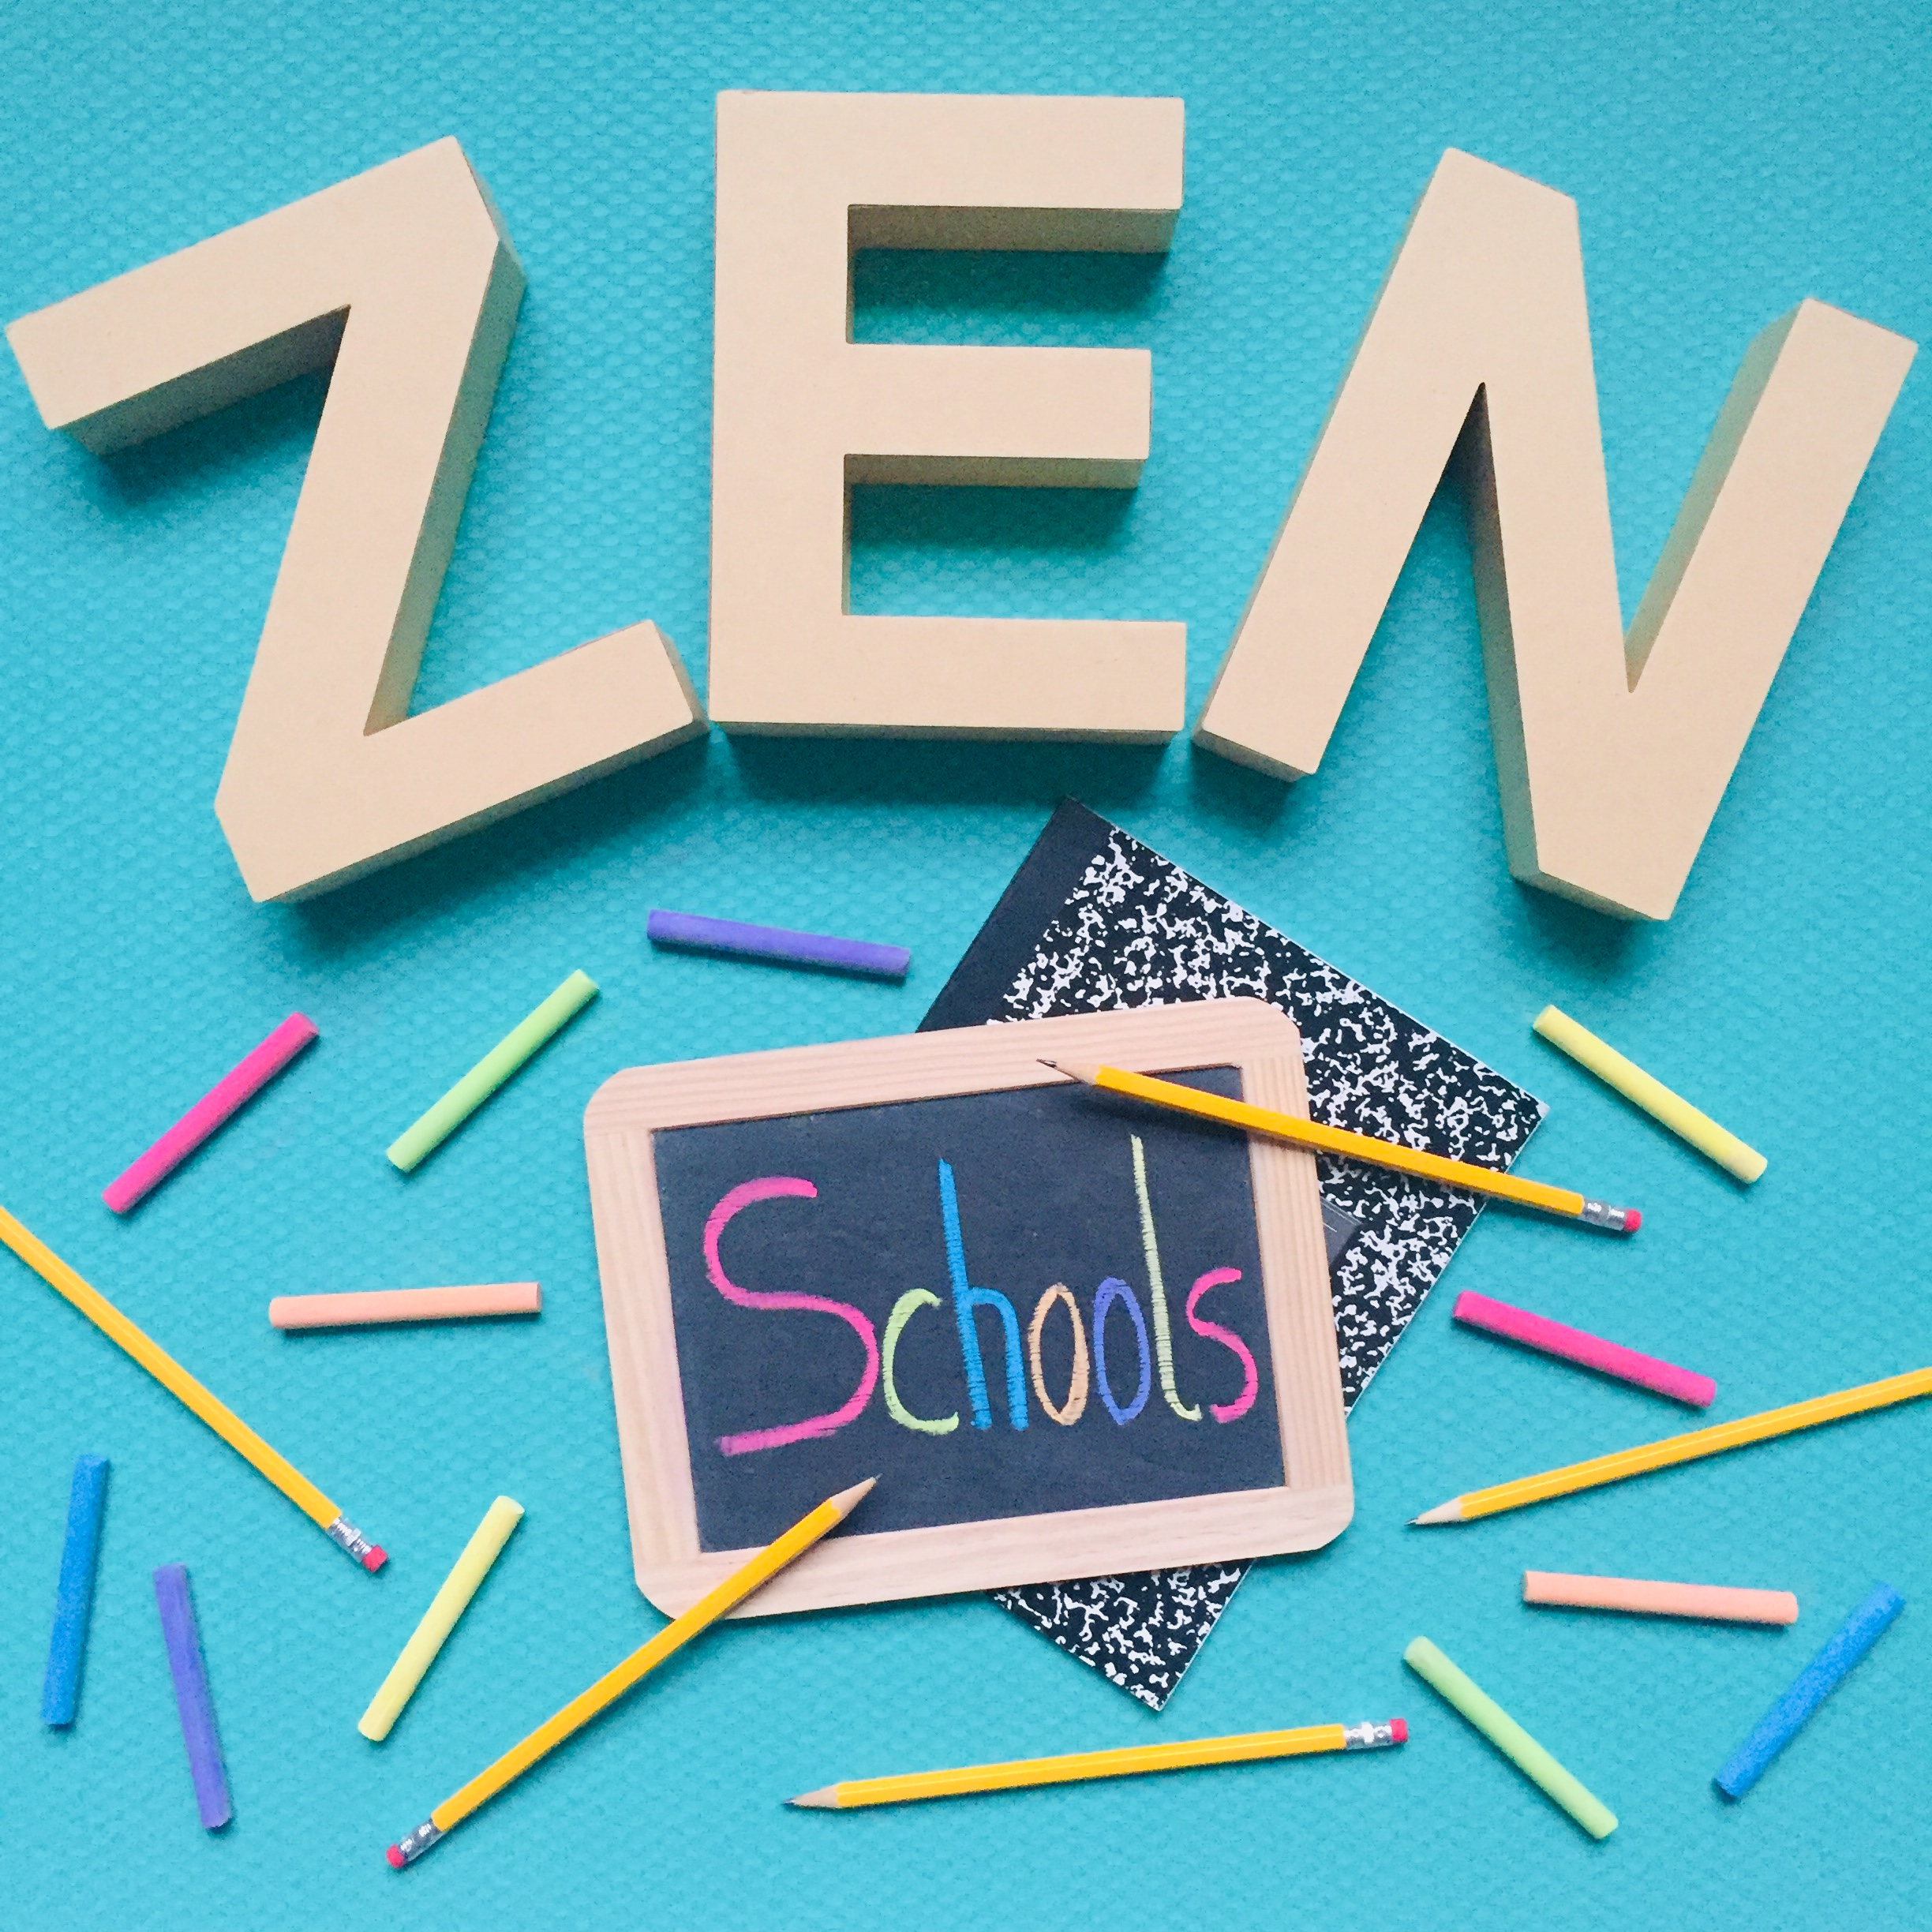 bringing mindfulness& yogato schools - Zen Kids and Zen Teachers will make the world a better place. One school at a time!